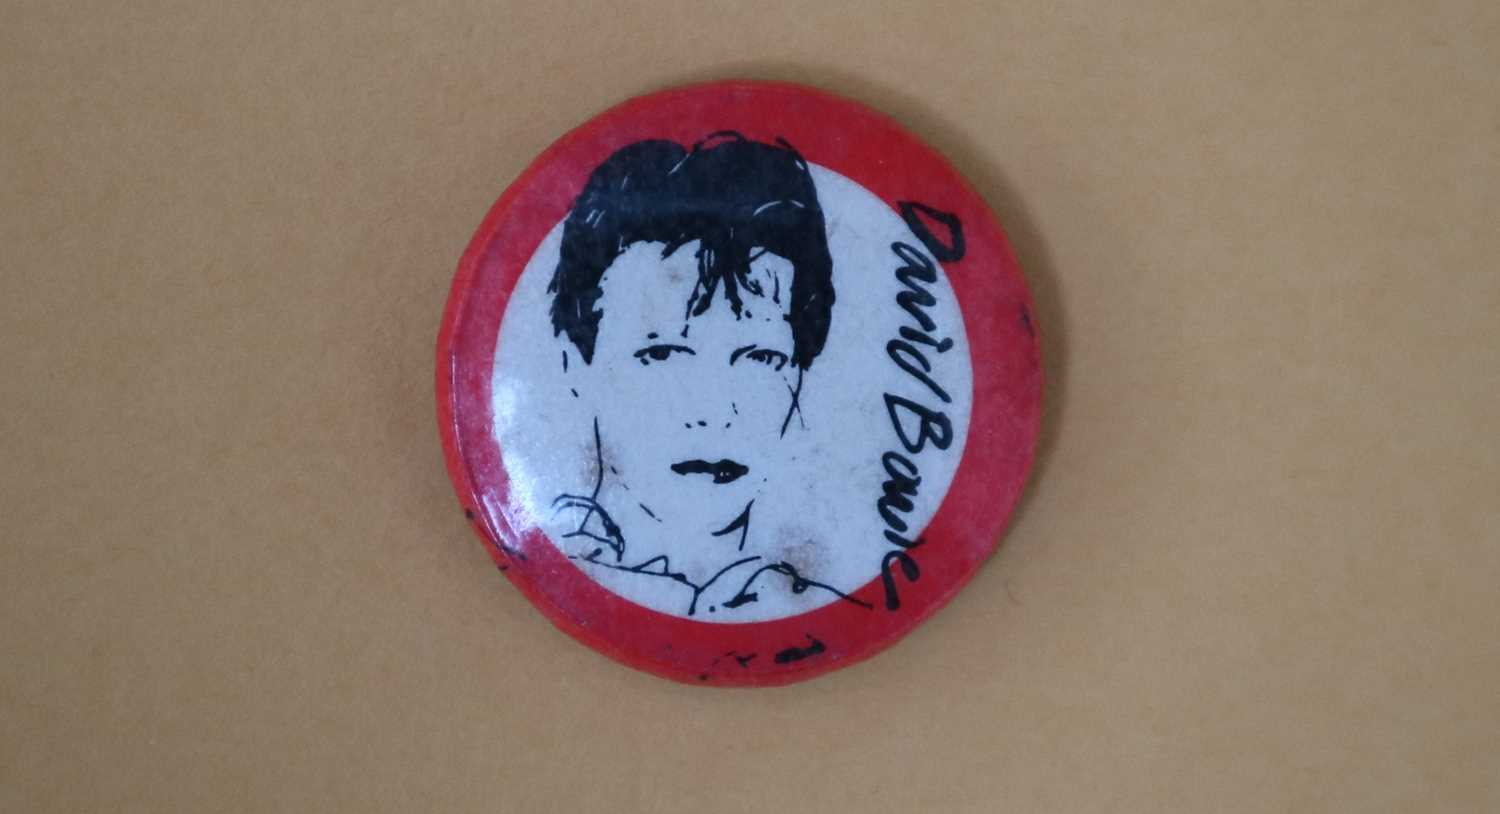 David Bowie Scary Monsters Pin Button Badge - Image 5 of 5